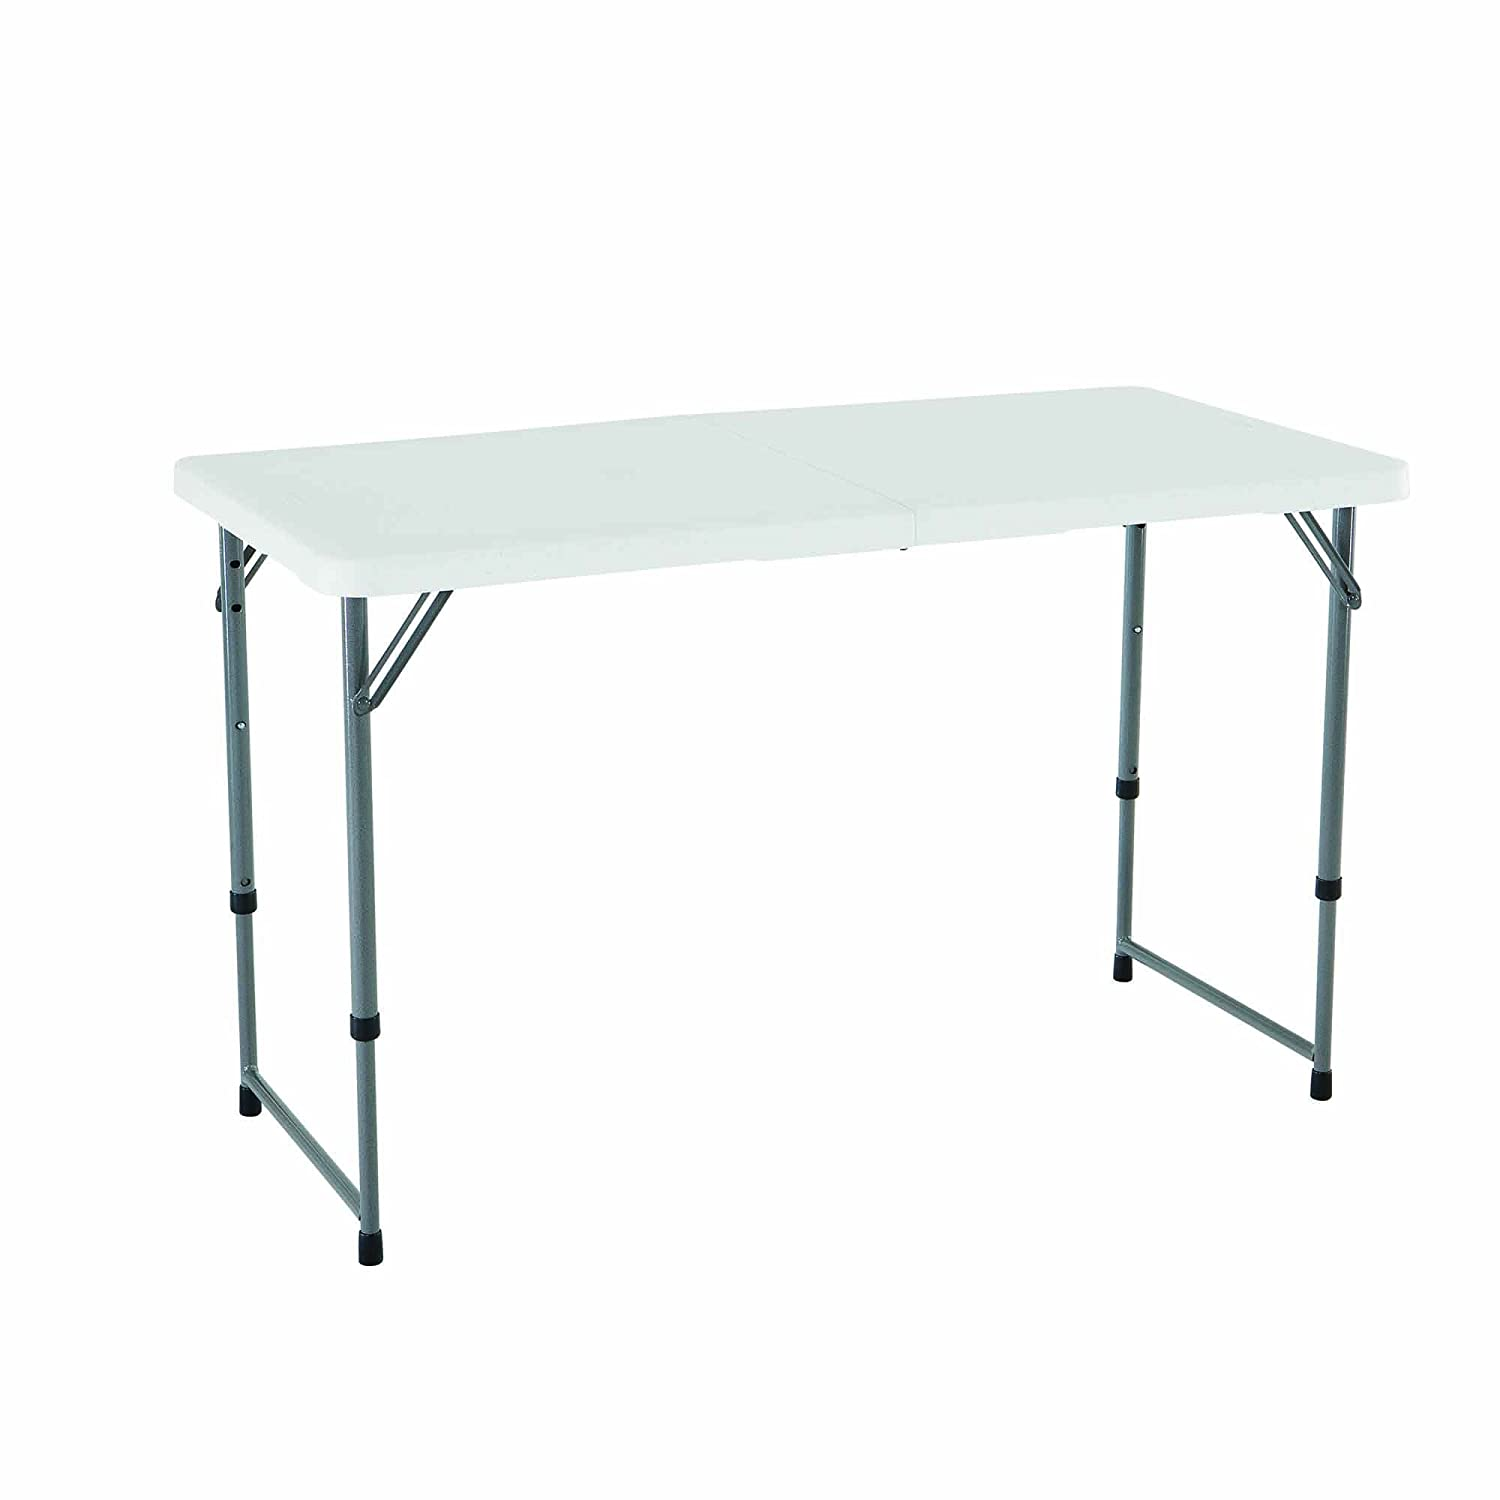 Best camping table pandaneo - Camping table adjustable height ...